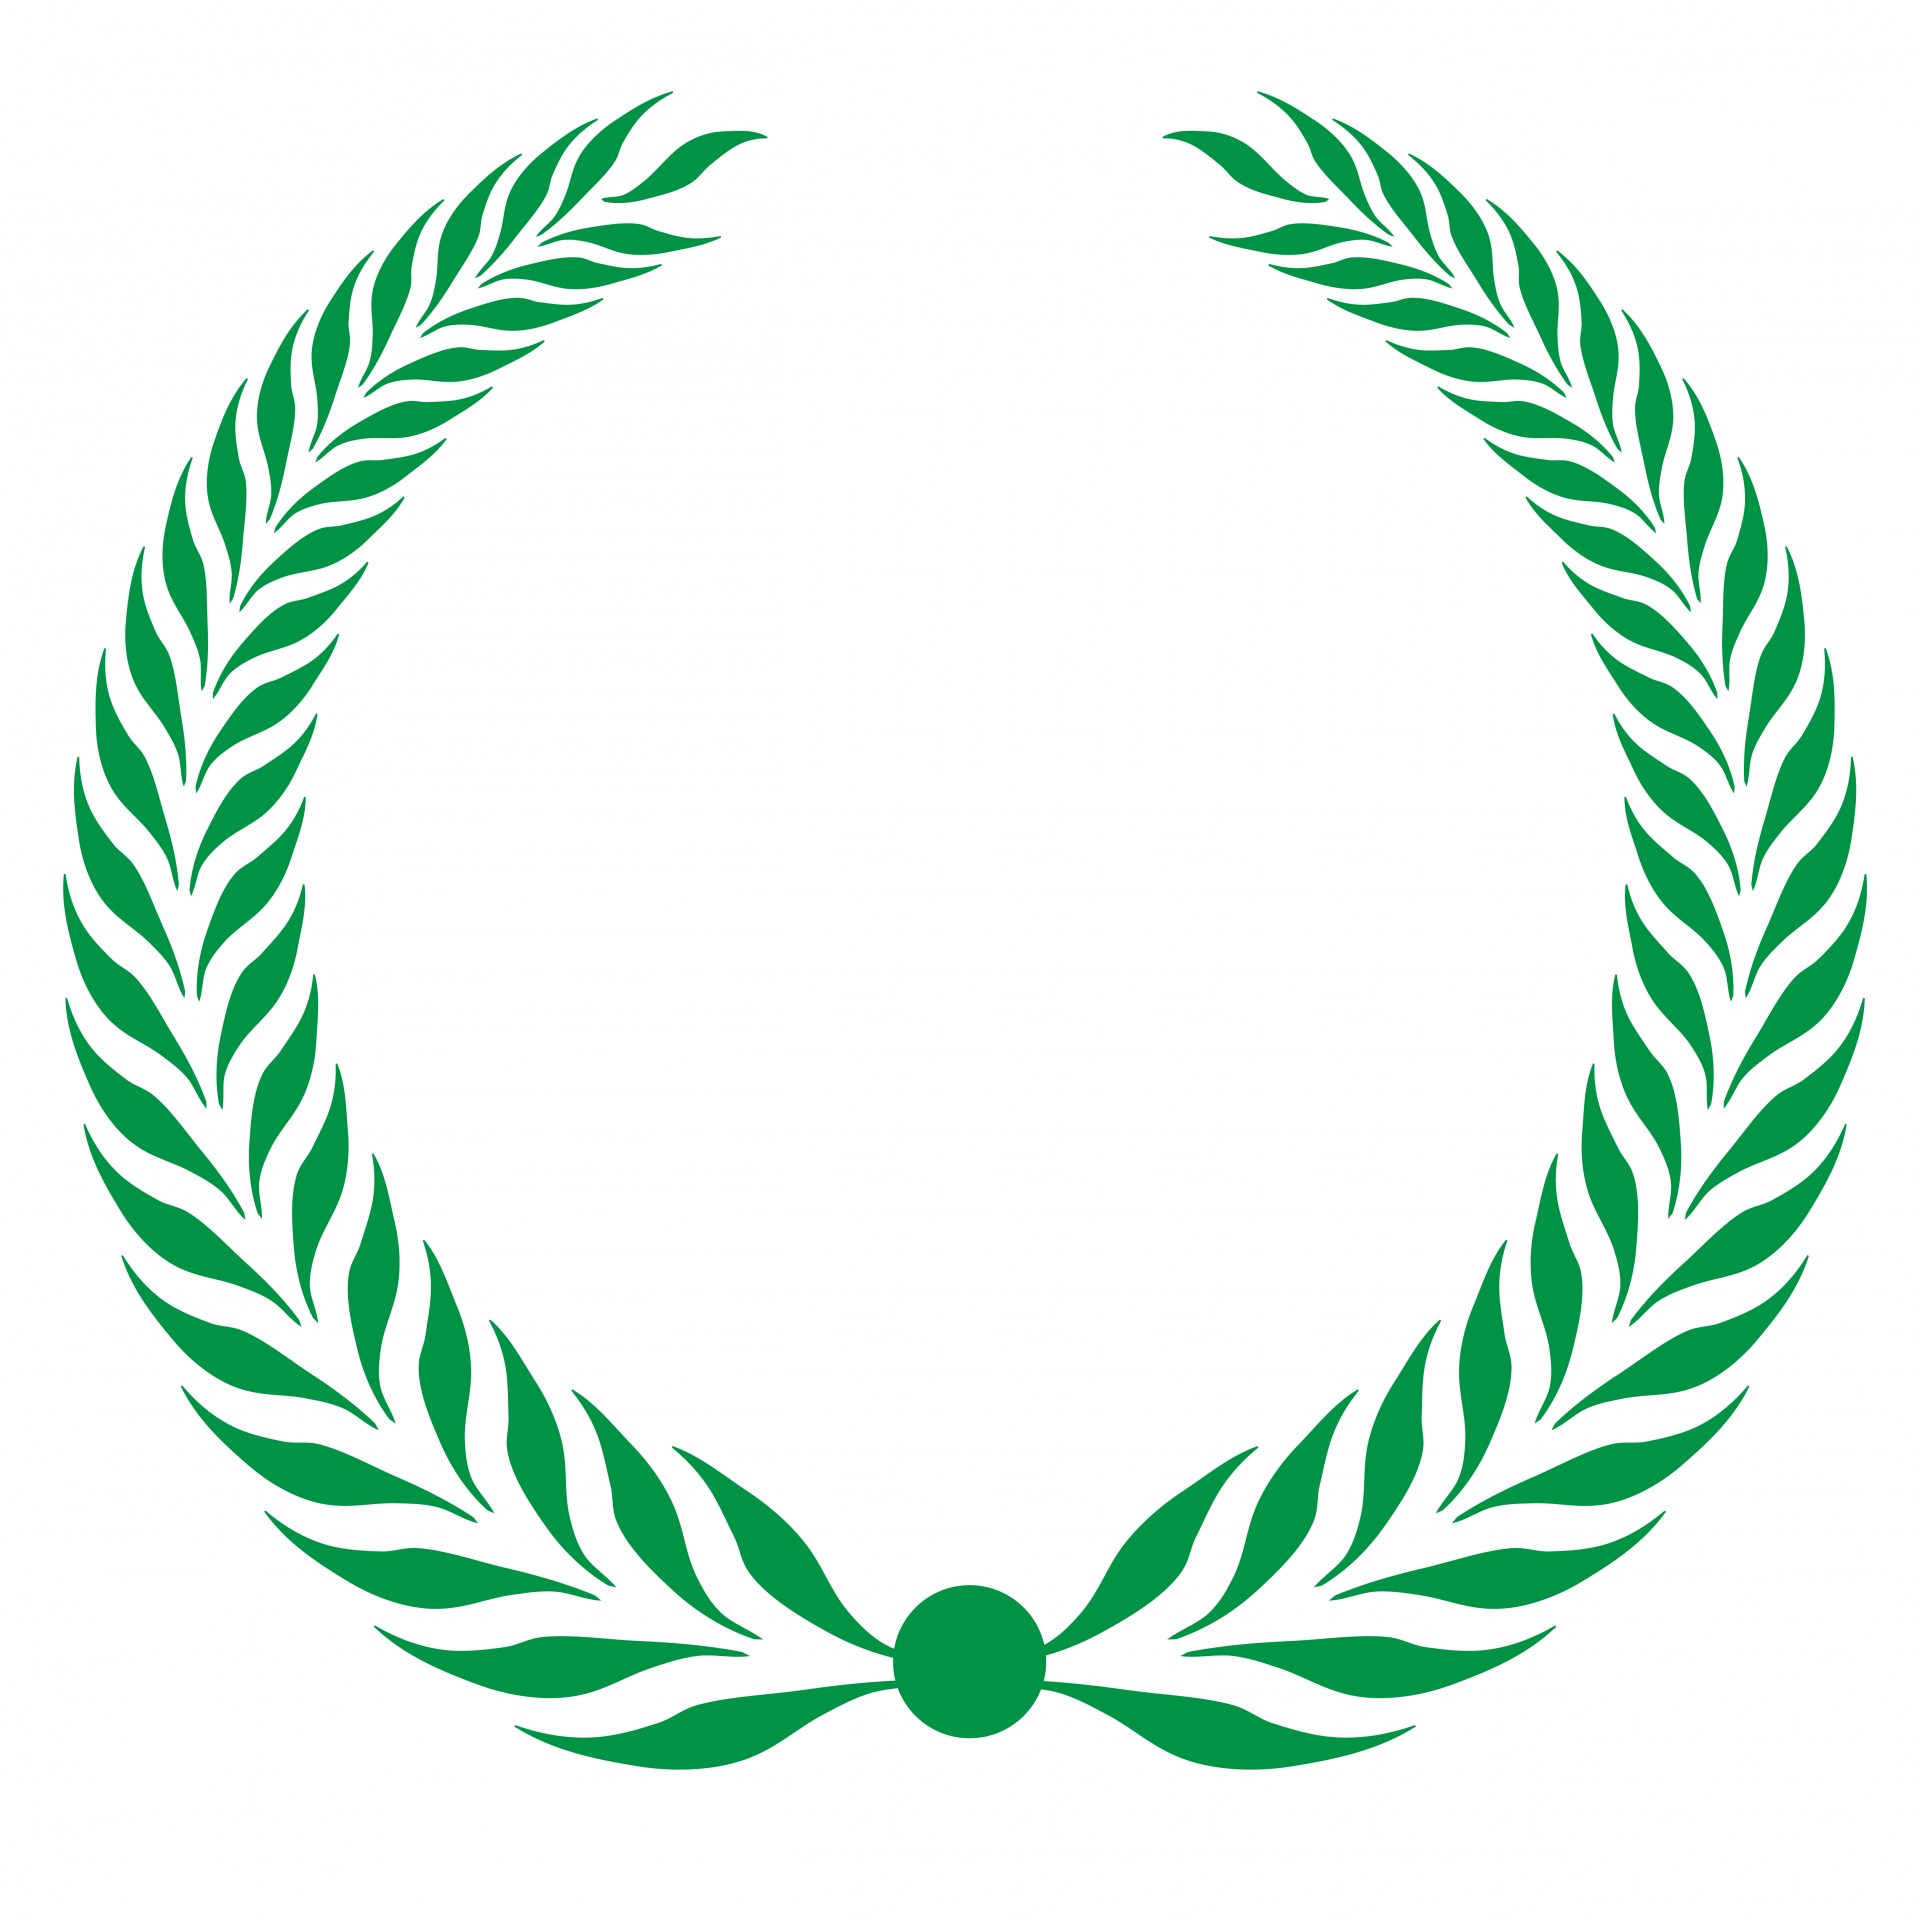 1920x1920 Laurel Wreath Clipart Green Free Stock Photo